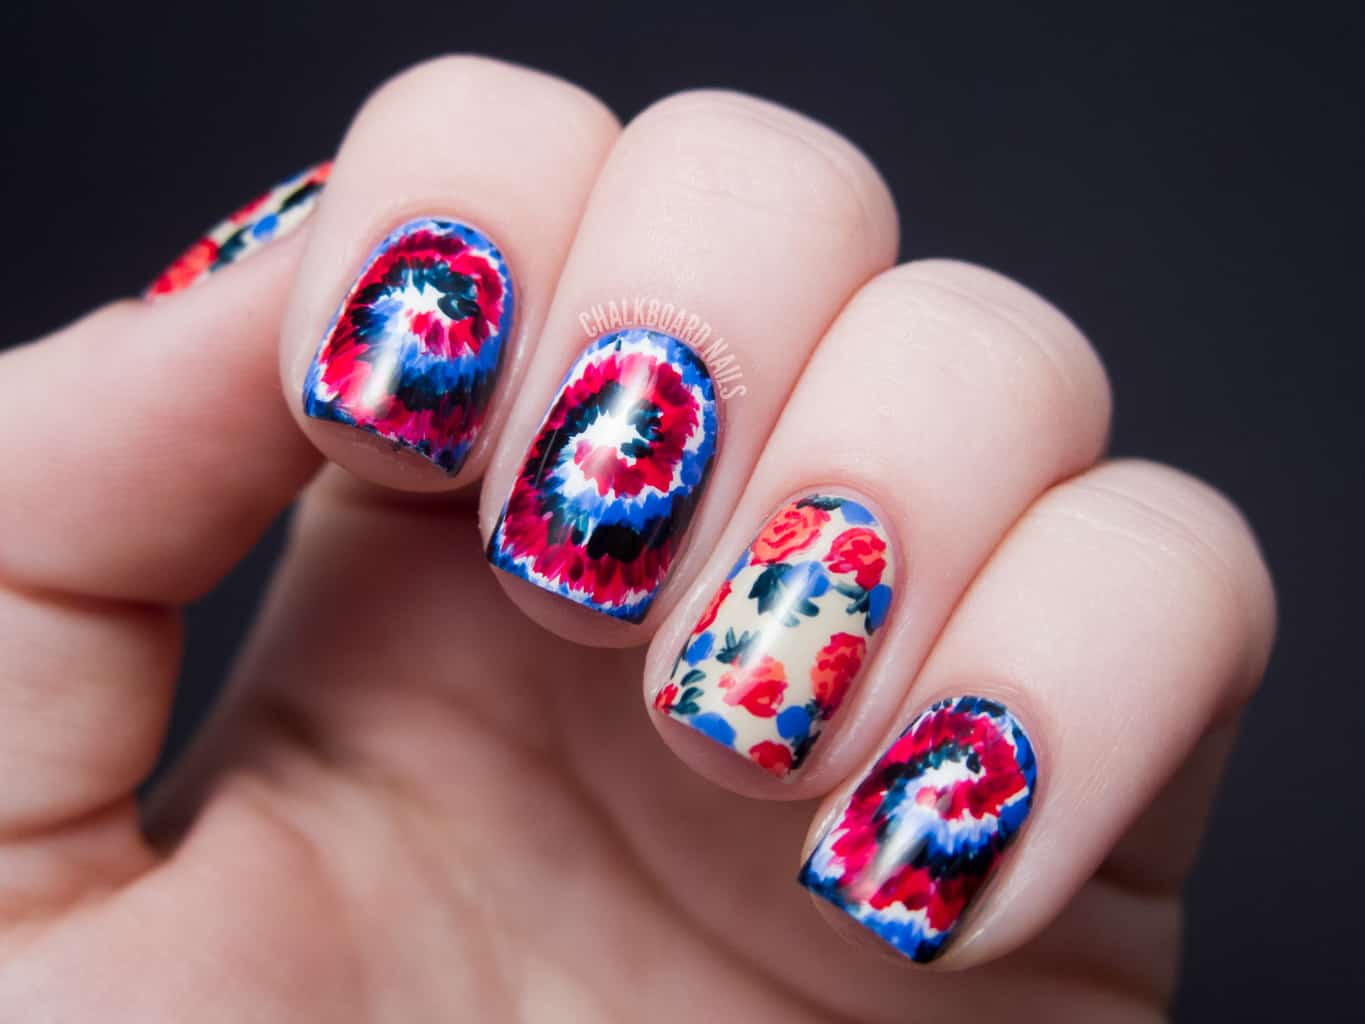 Swirl with Floral Pattern - tie dye nails